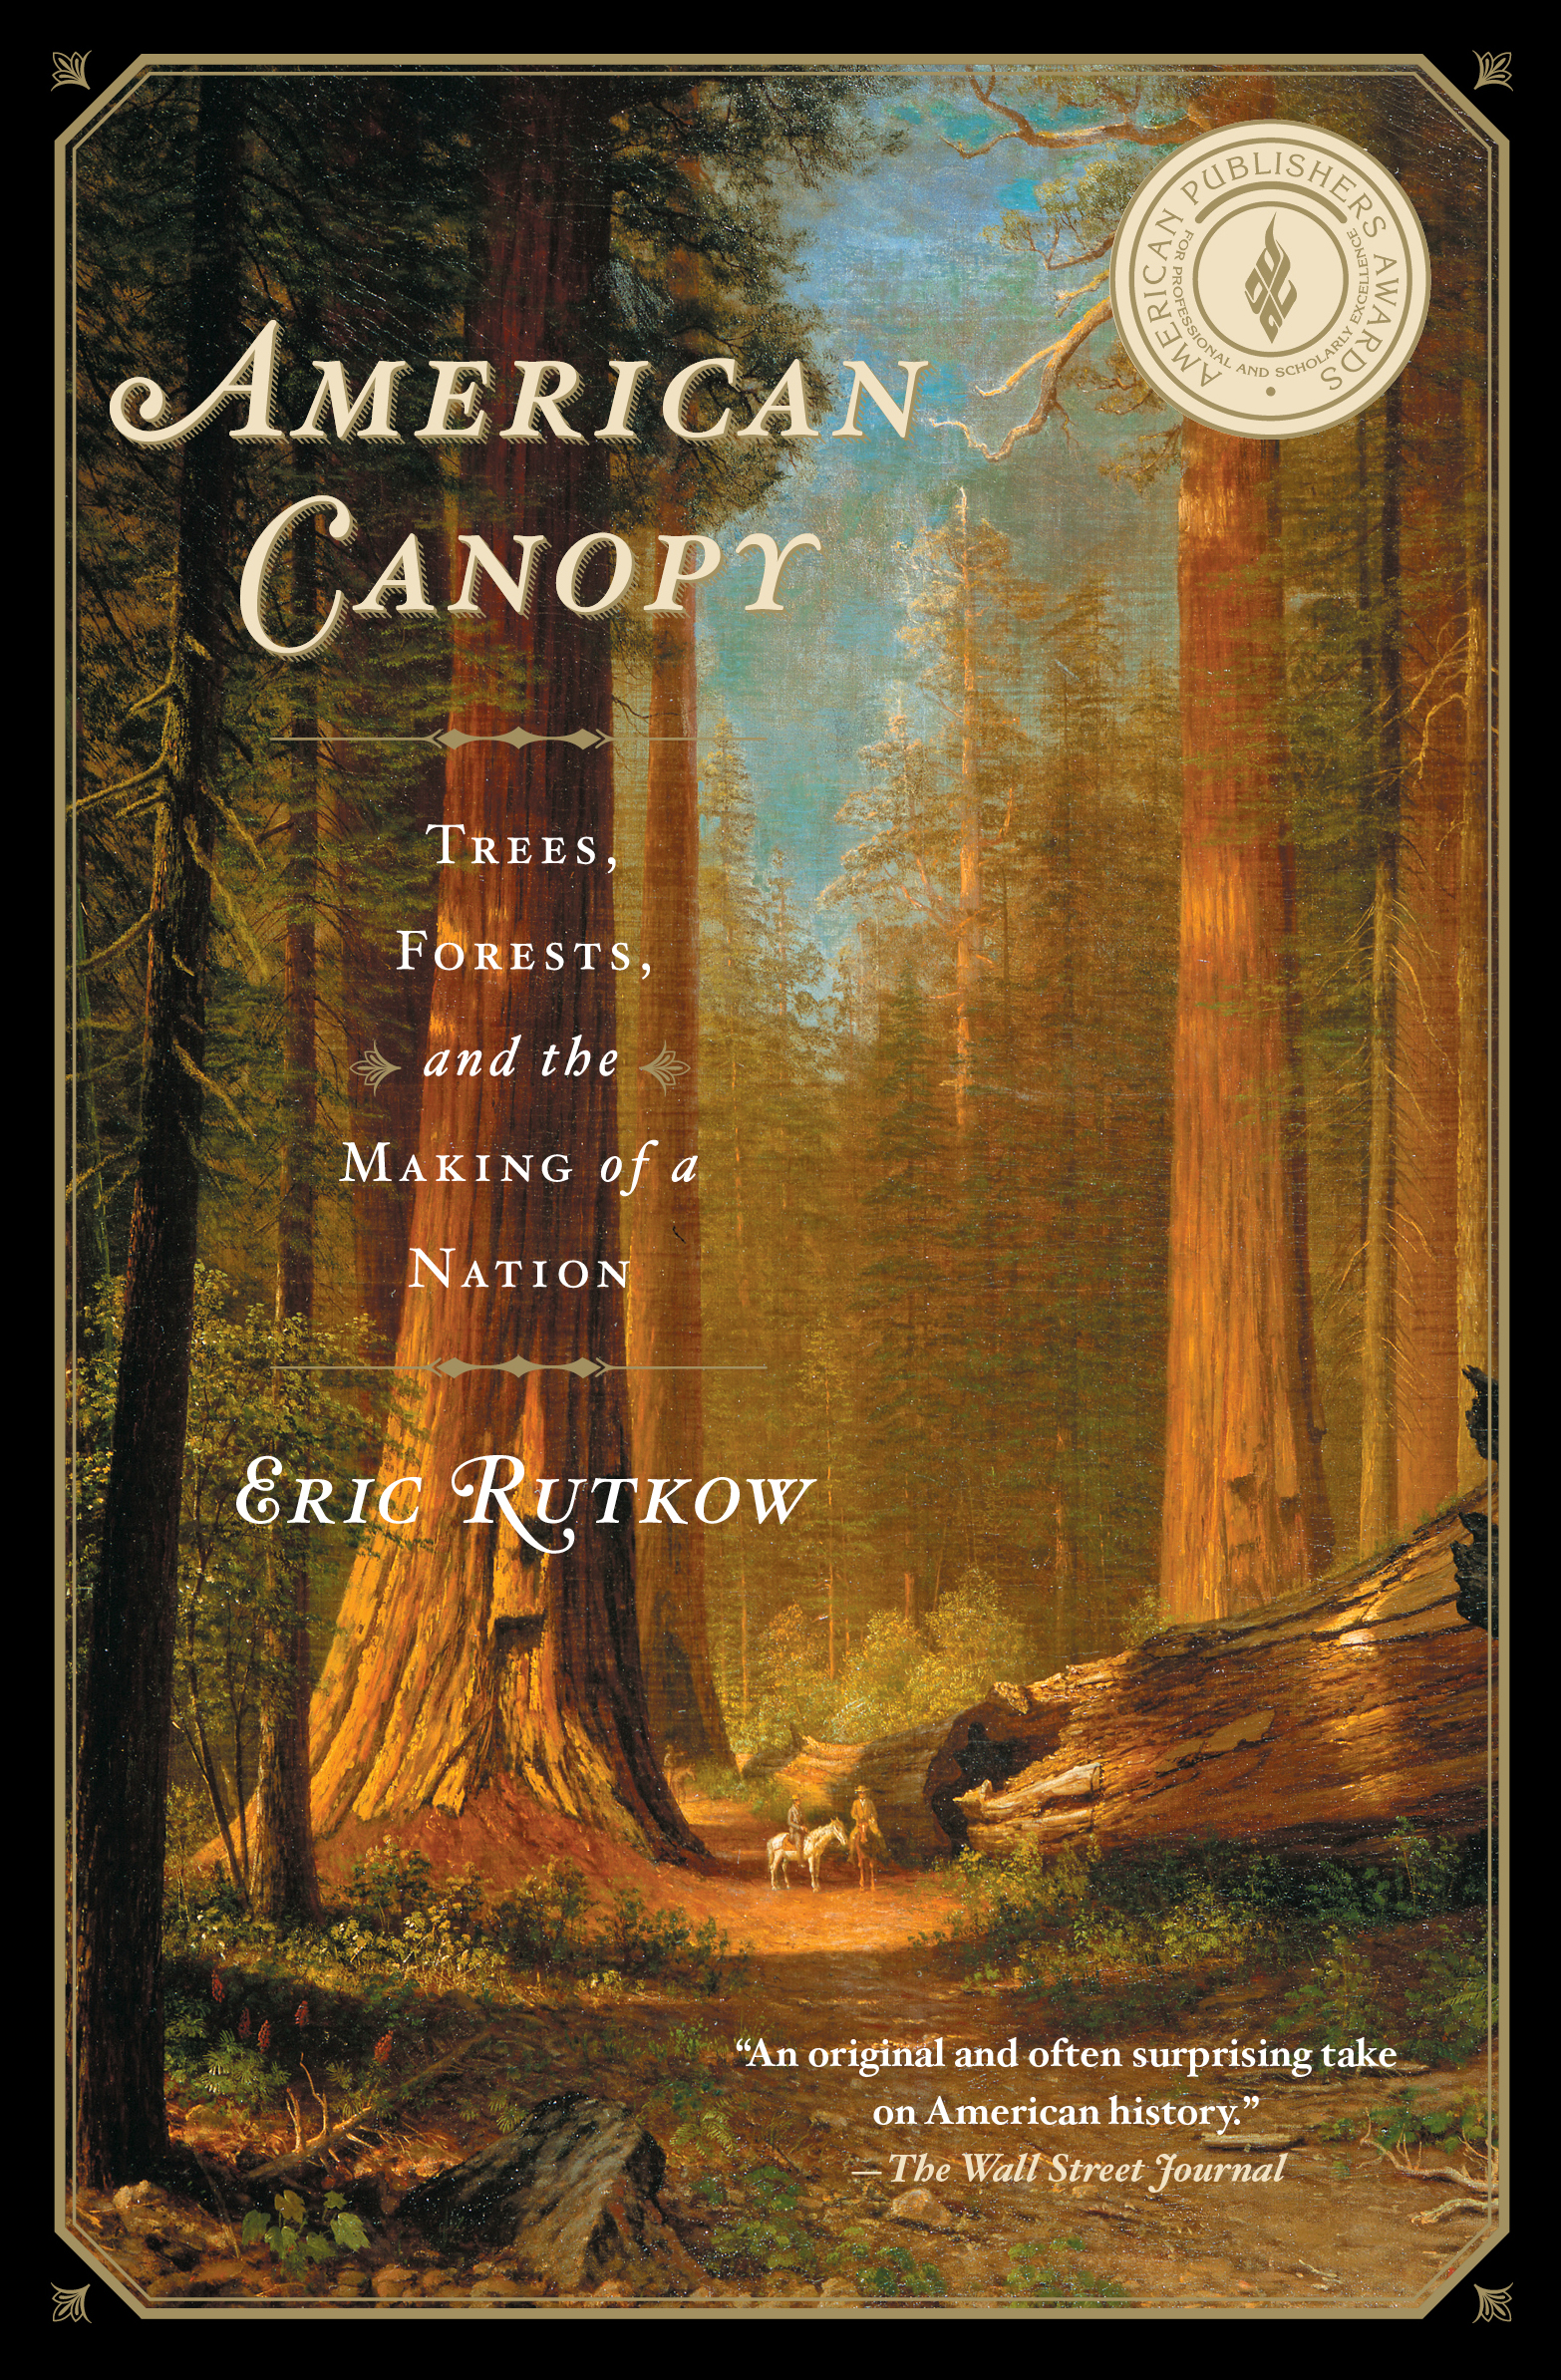 Cvr9781439193587 9781439193587 hr. American Canopy  sc 1 st  Simon u0026 Schuster & American Canopy | Book by Eric Rutkow | Official Publisher Page ...